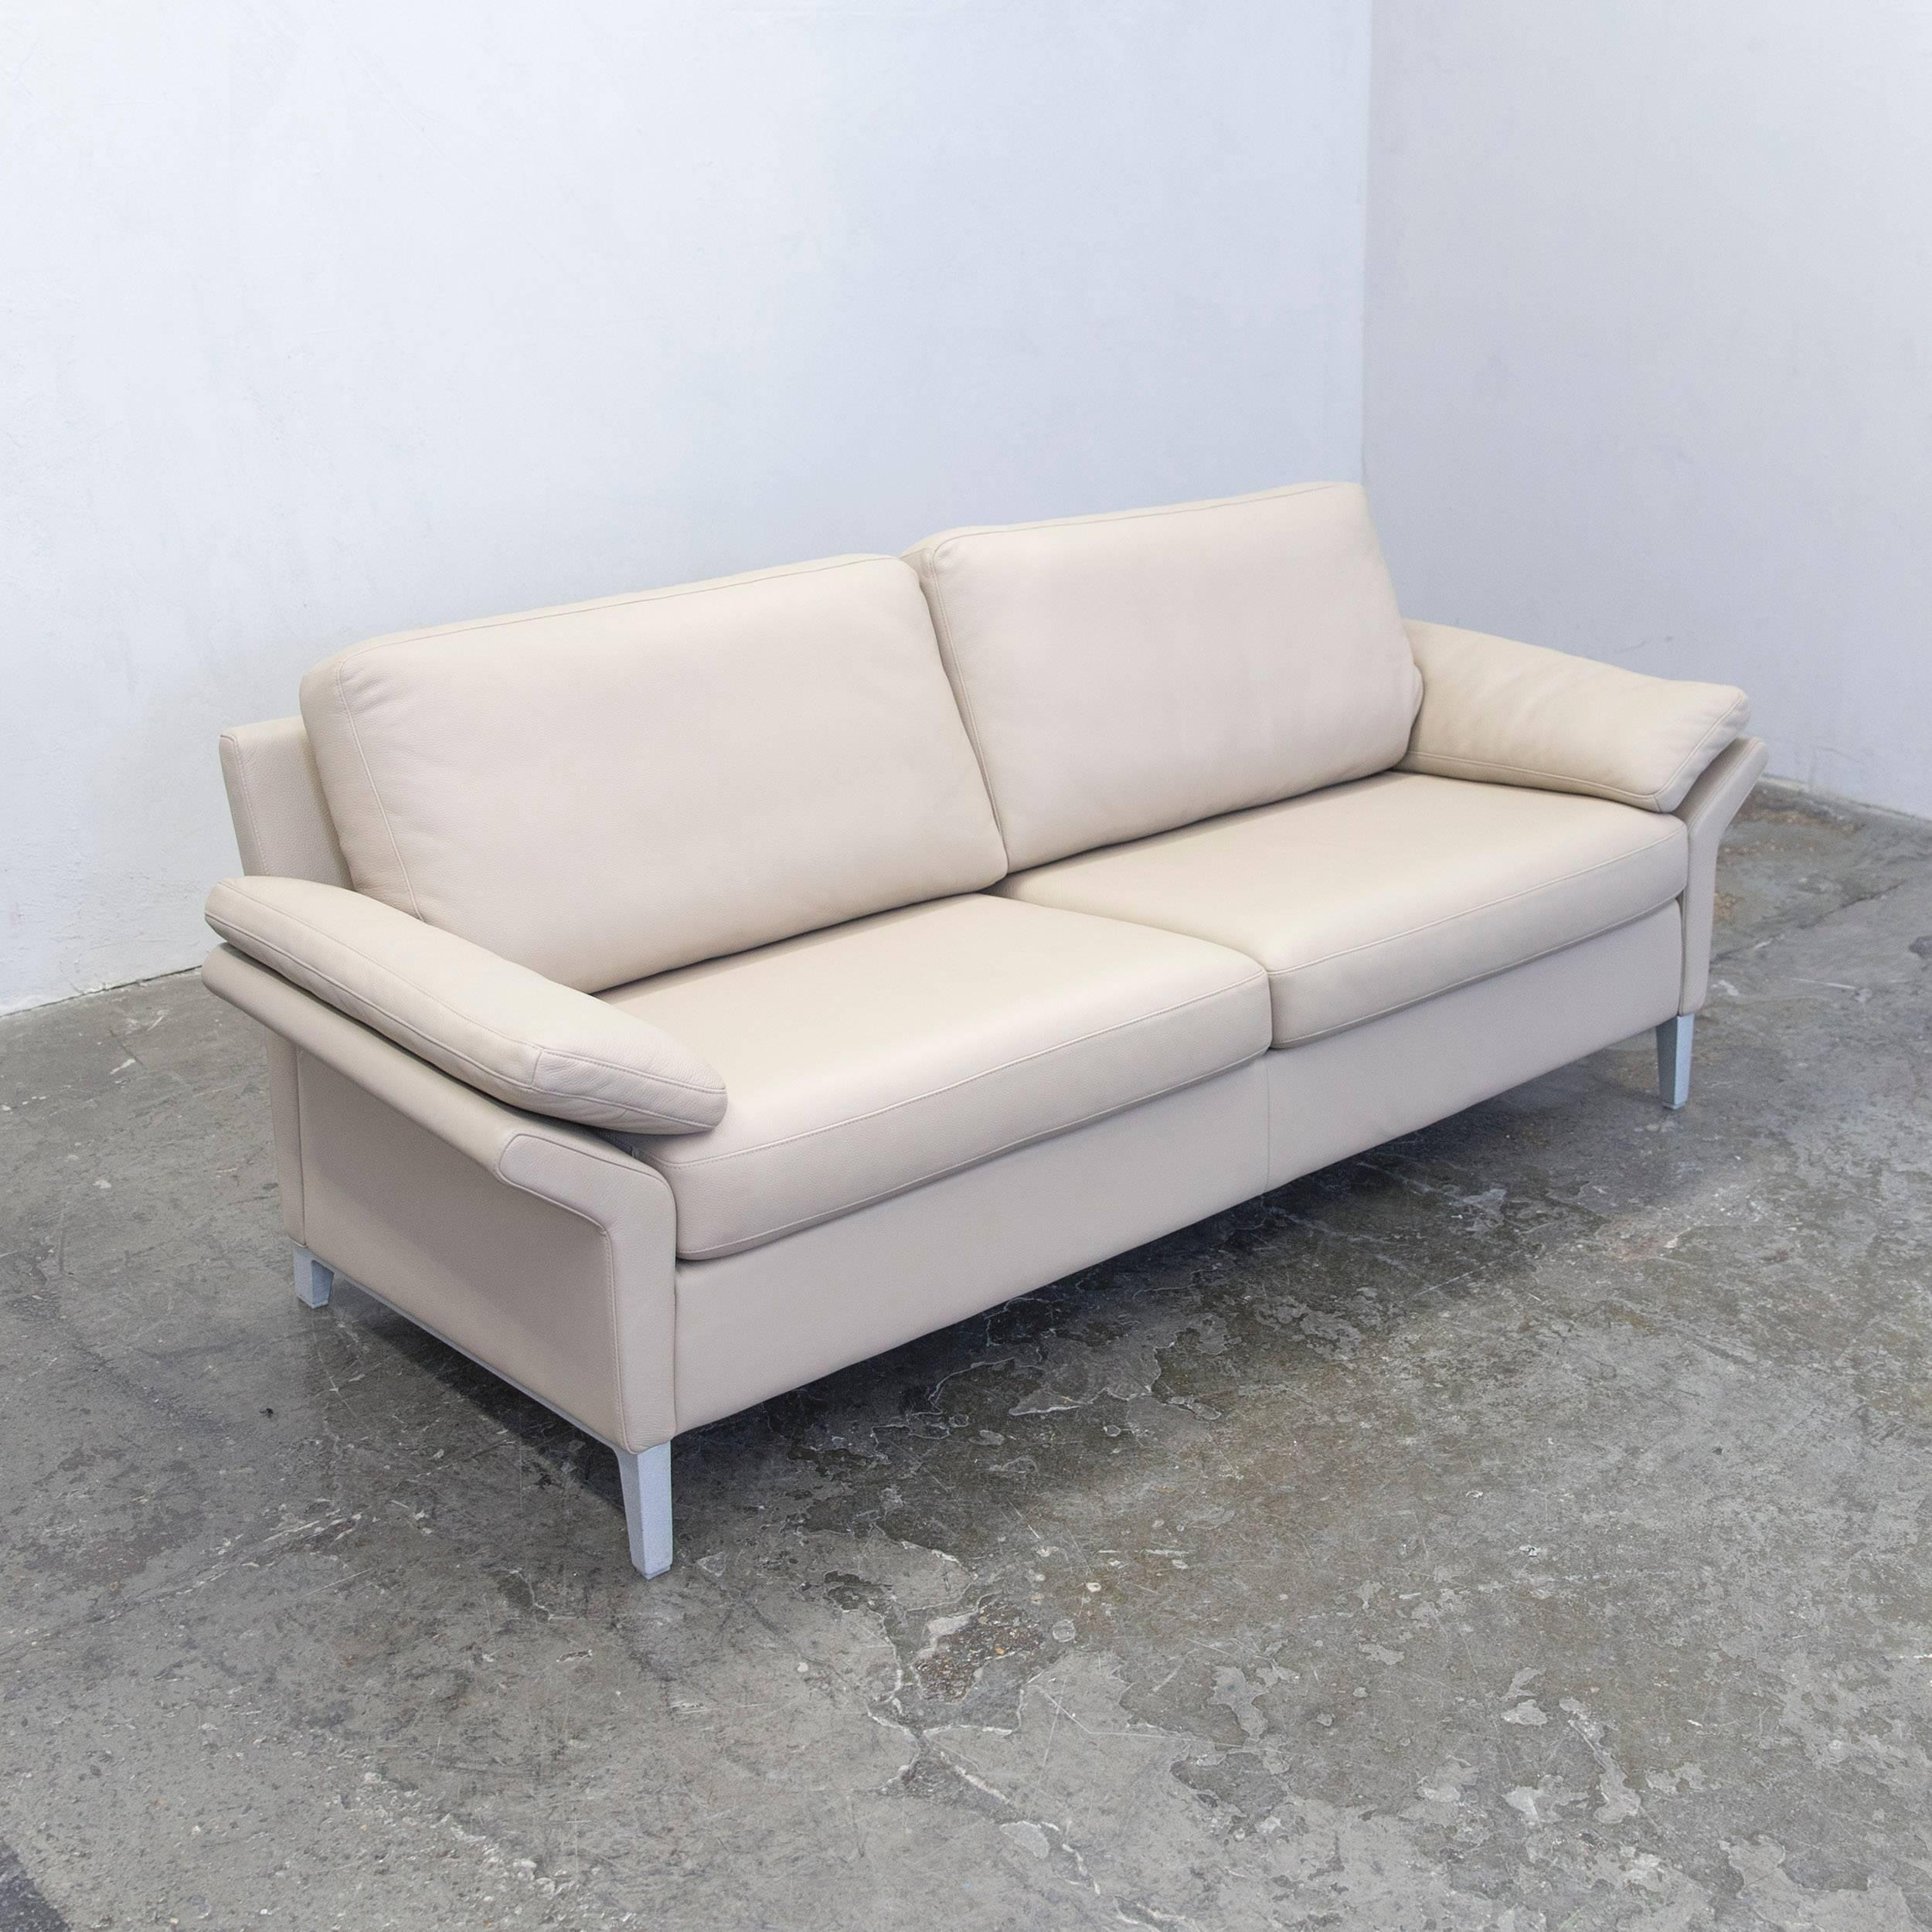 rolf benz sofa reviews sofas uk finance polstermbel perfect furniture fine dono modular